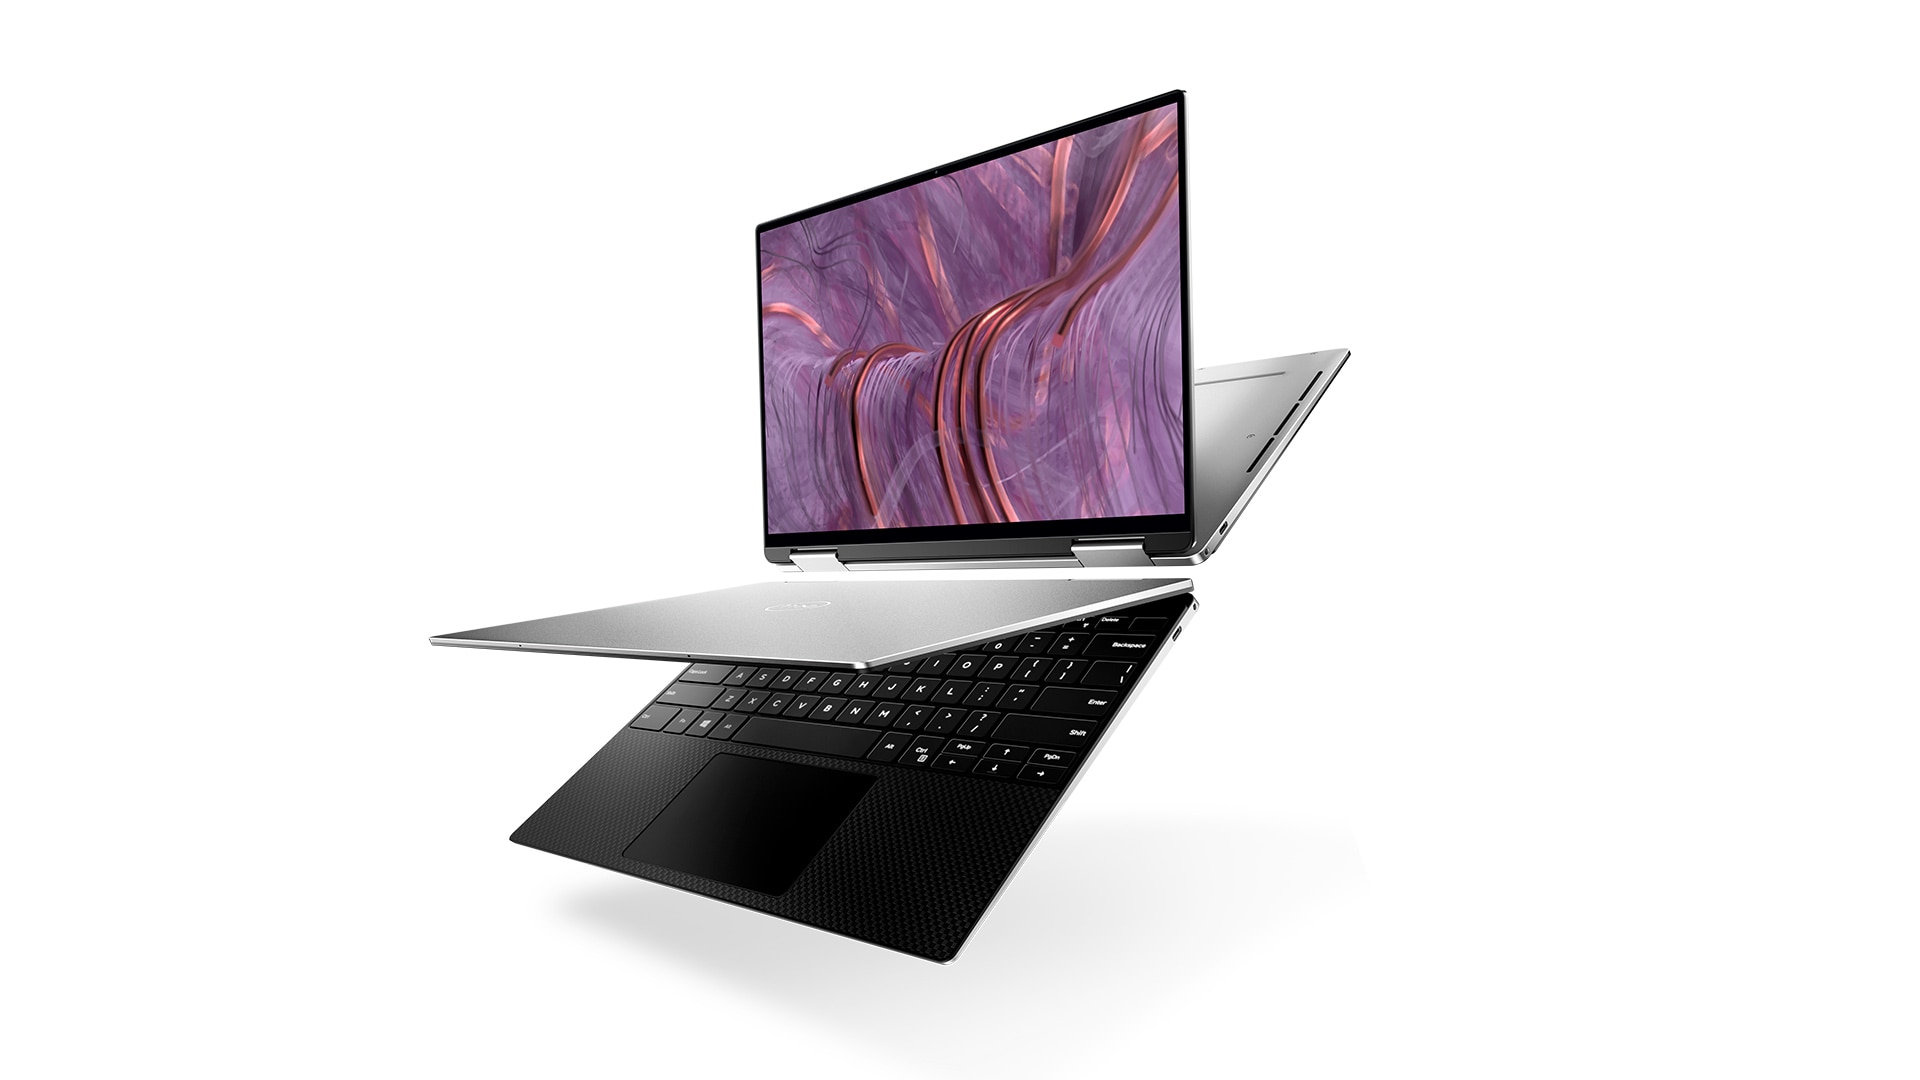 XPS 13 2-in-1 Product Walk Through Video 1:11